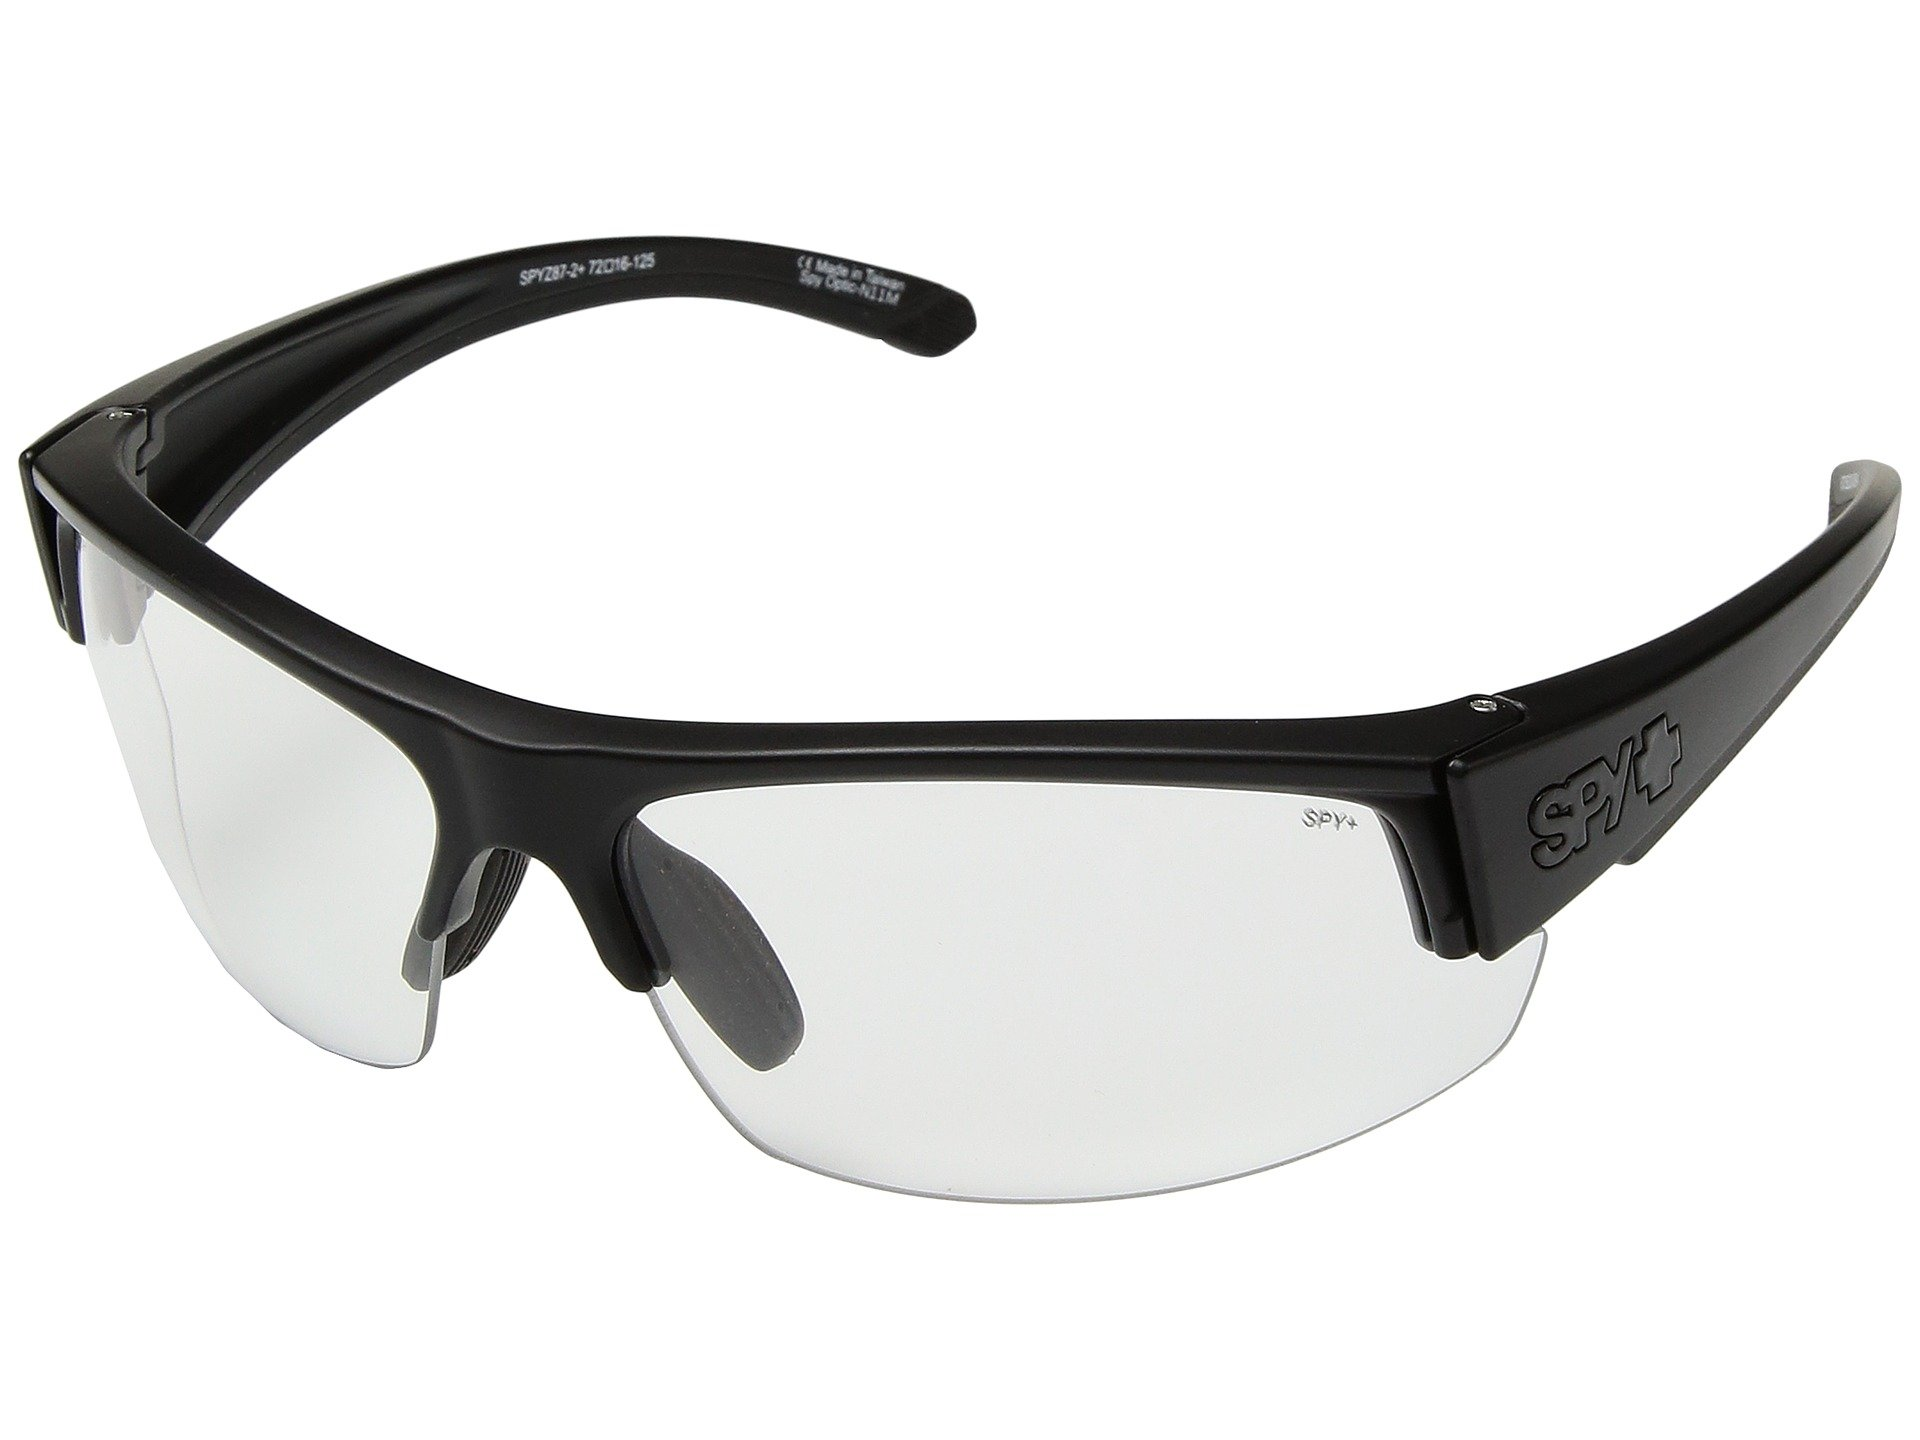 SPY Optic Sprinter Sunglasses for Men and for Women | Polarized Styles Available | ANSI-certified with Patented Detail Boosting Happy Lens Tech for Pure Performance